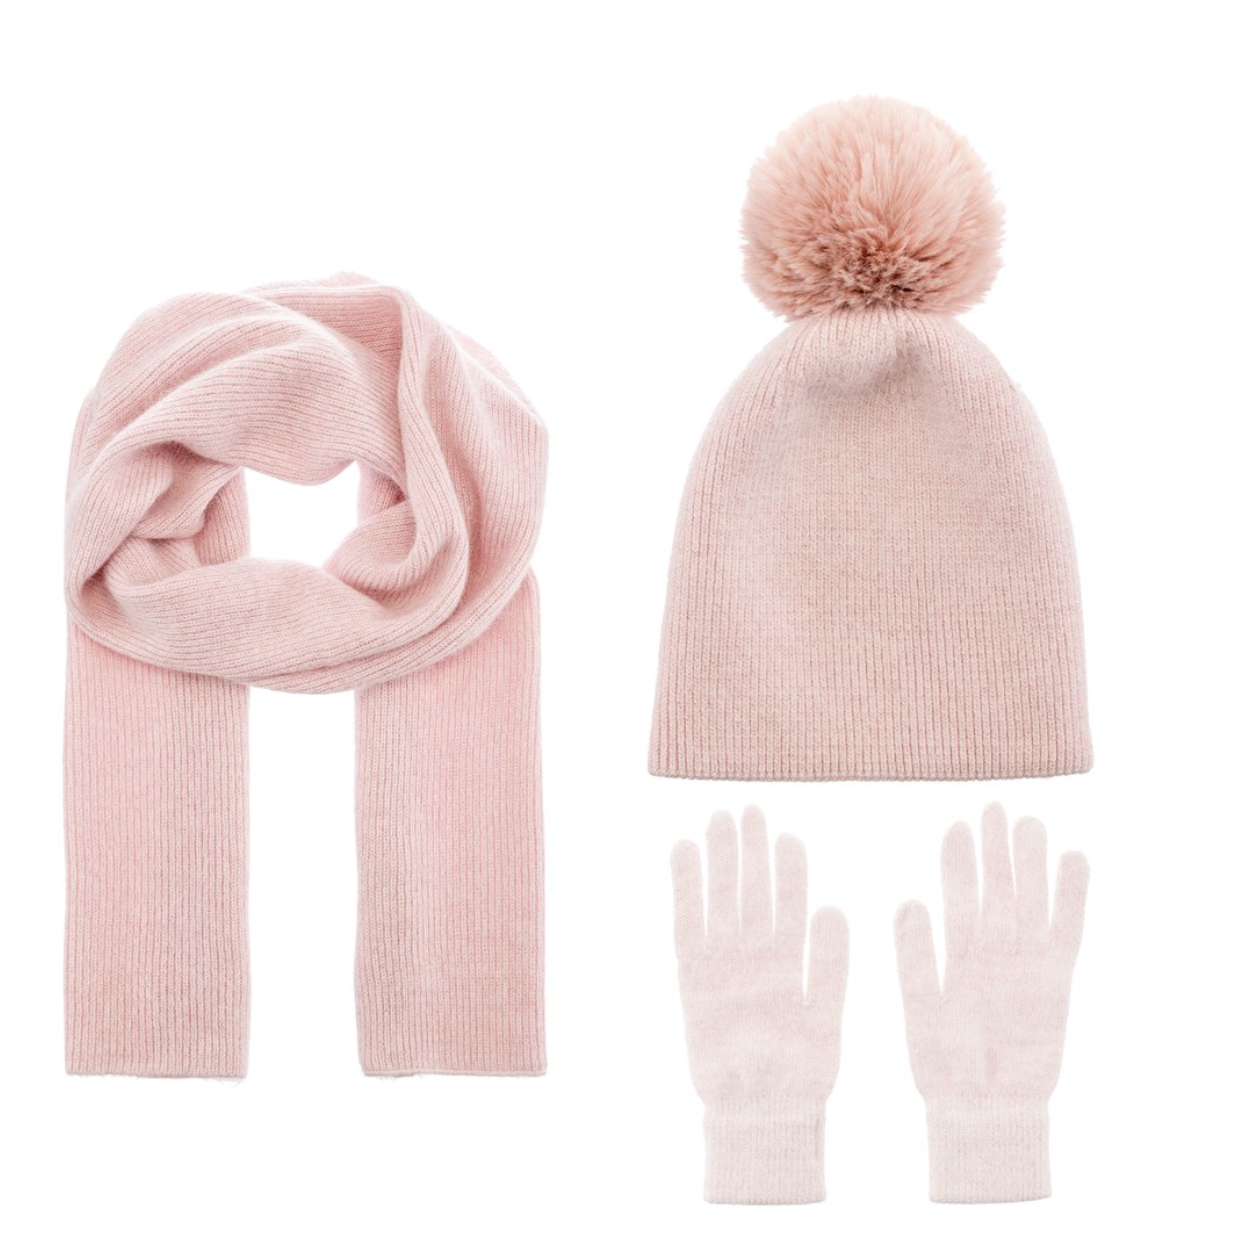 Matching hat, Glove and Scarf Set